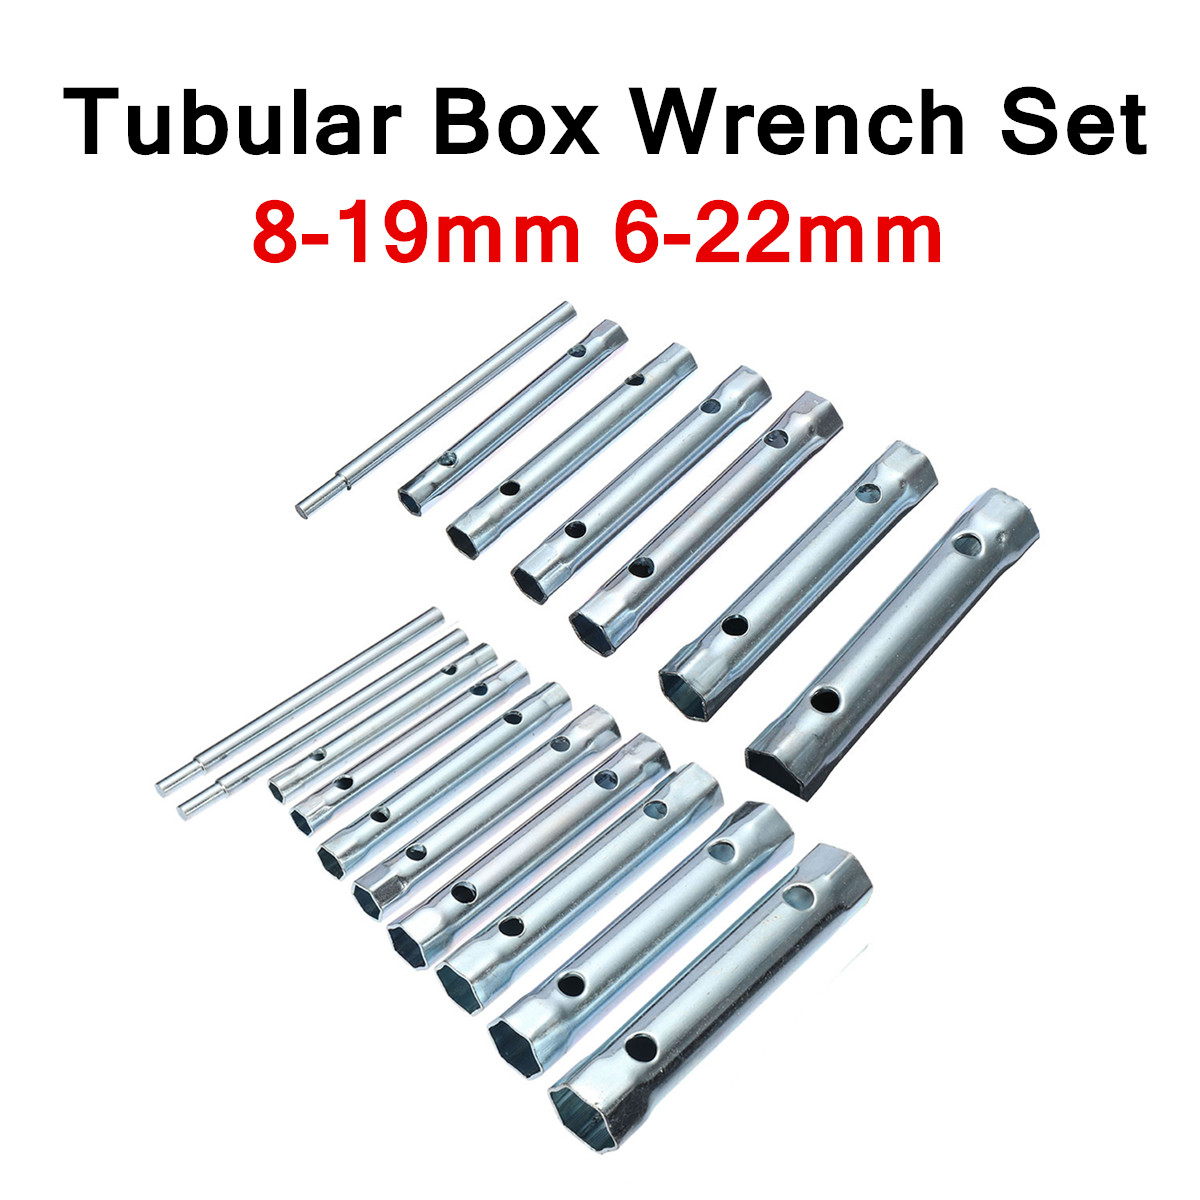 6PC/10PC Metric Tubular Box Wrench Set 8-19mm 6-22mm Tube Bar Spark-Plug Spanner Steel Double Ended For Automotive Plumb Repair